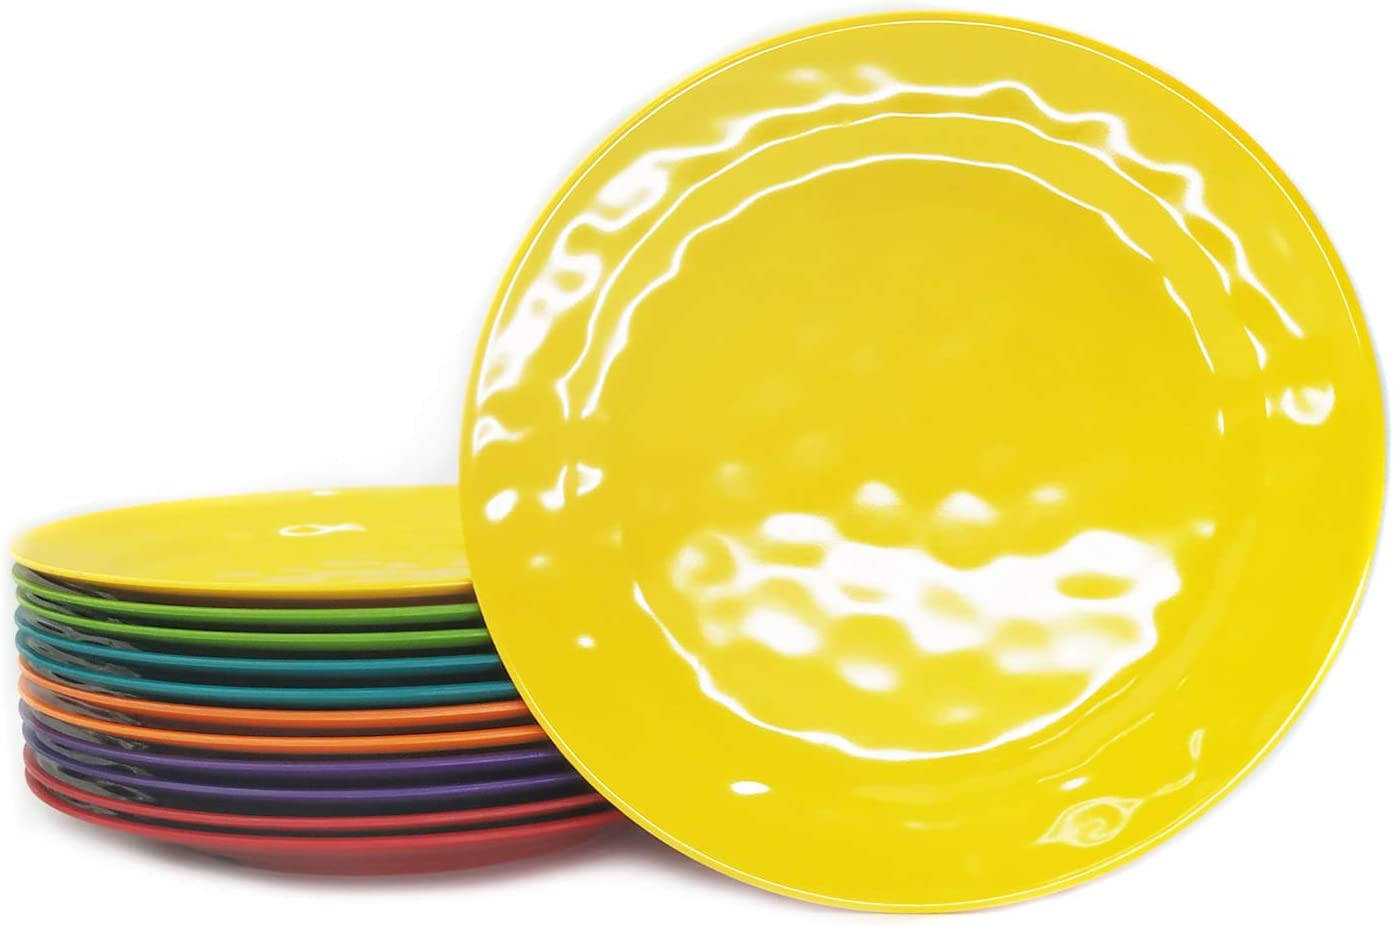 Melamine Plates set -10inch 12pcs 100% Melamine Dinner Plates for Everyday Use, Break-resistant and Lightweight, MultiColor